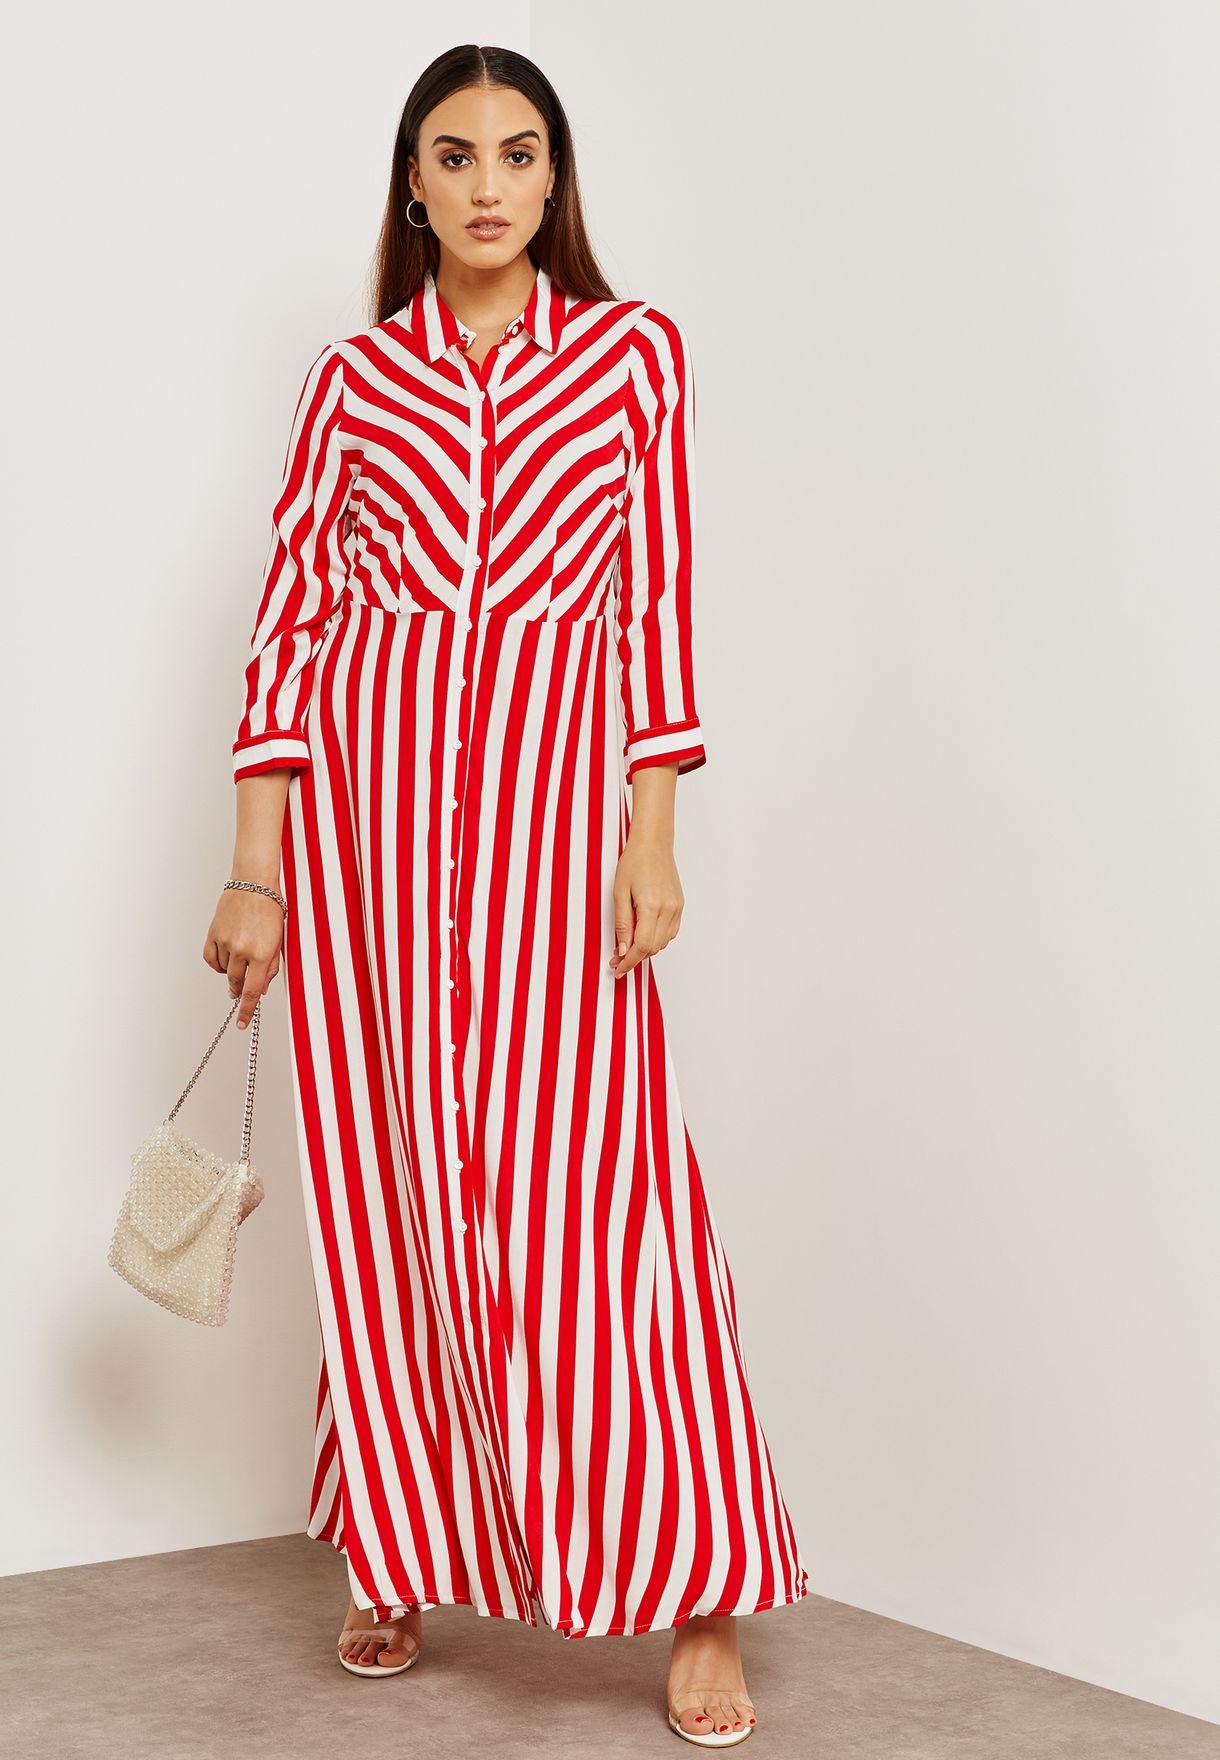 3fe772c49f2 Shop Yas prints Striped Shirt Dress 26011375 for Women in Bahrain ...